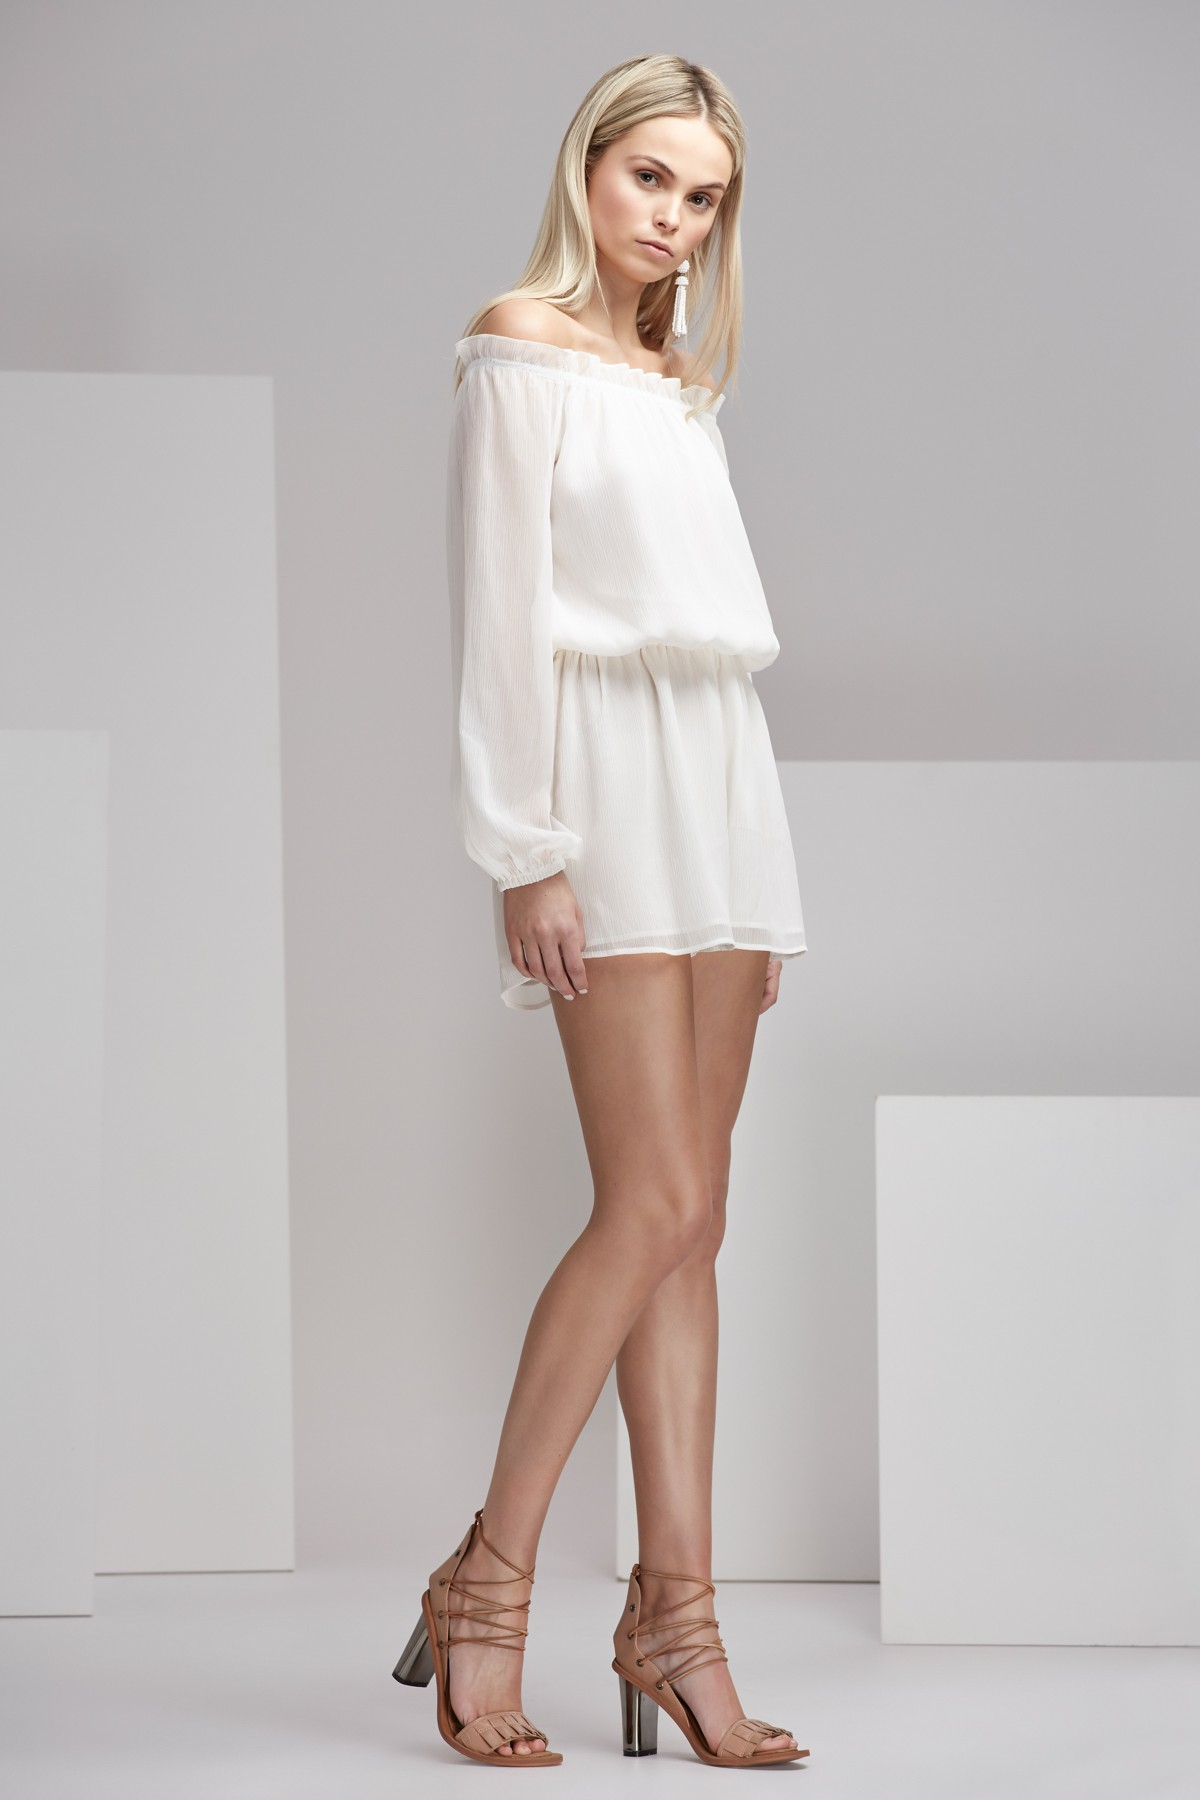 FINDERS Mateo Playsuit